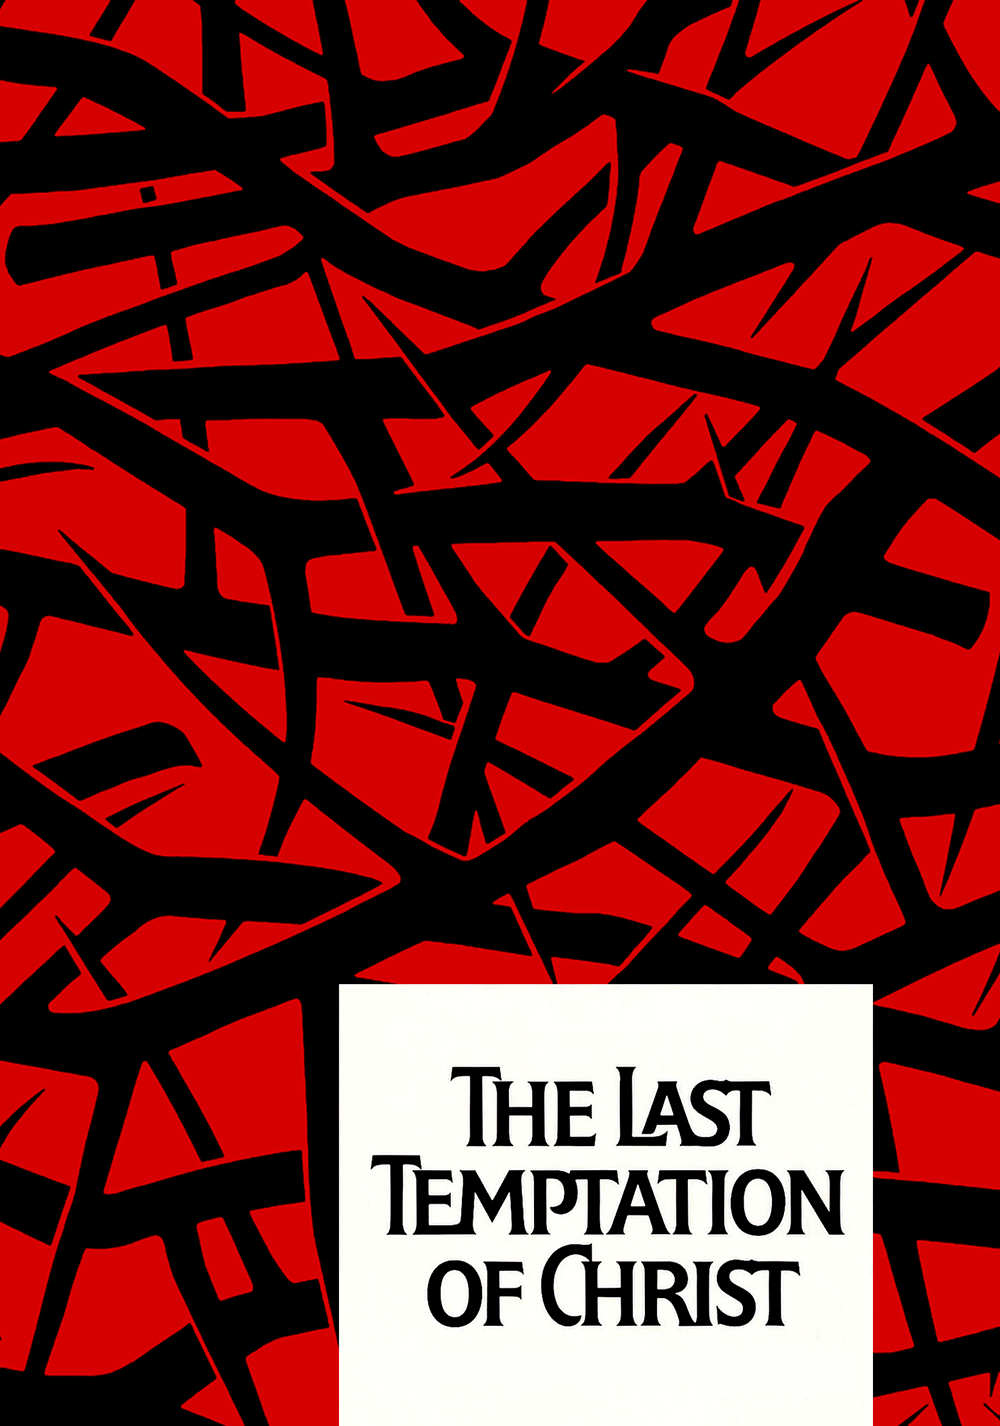 the-last-temptation-of-christ-538a9a4785112